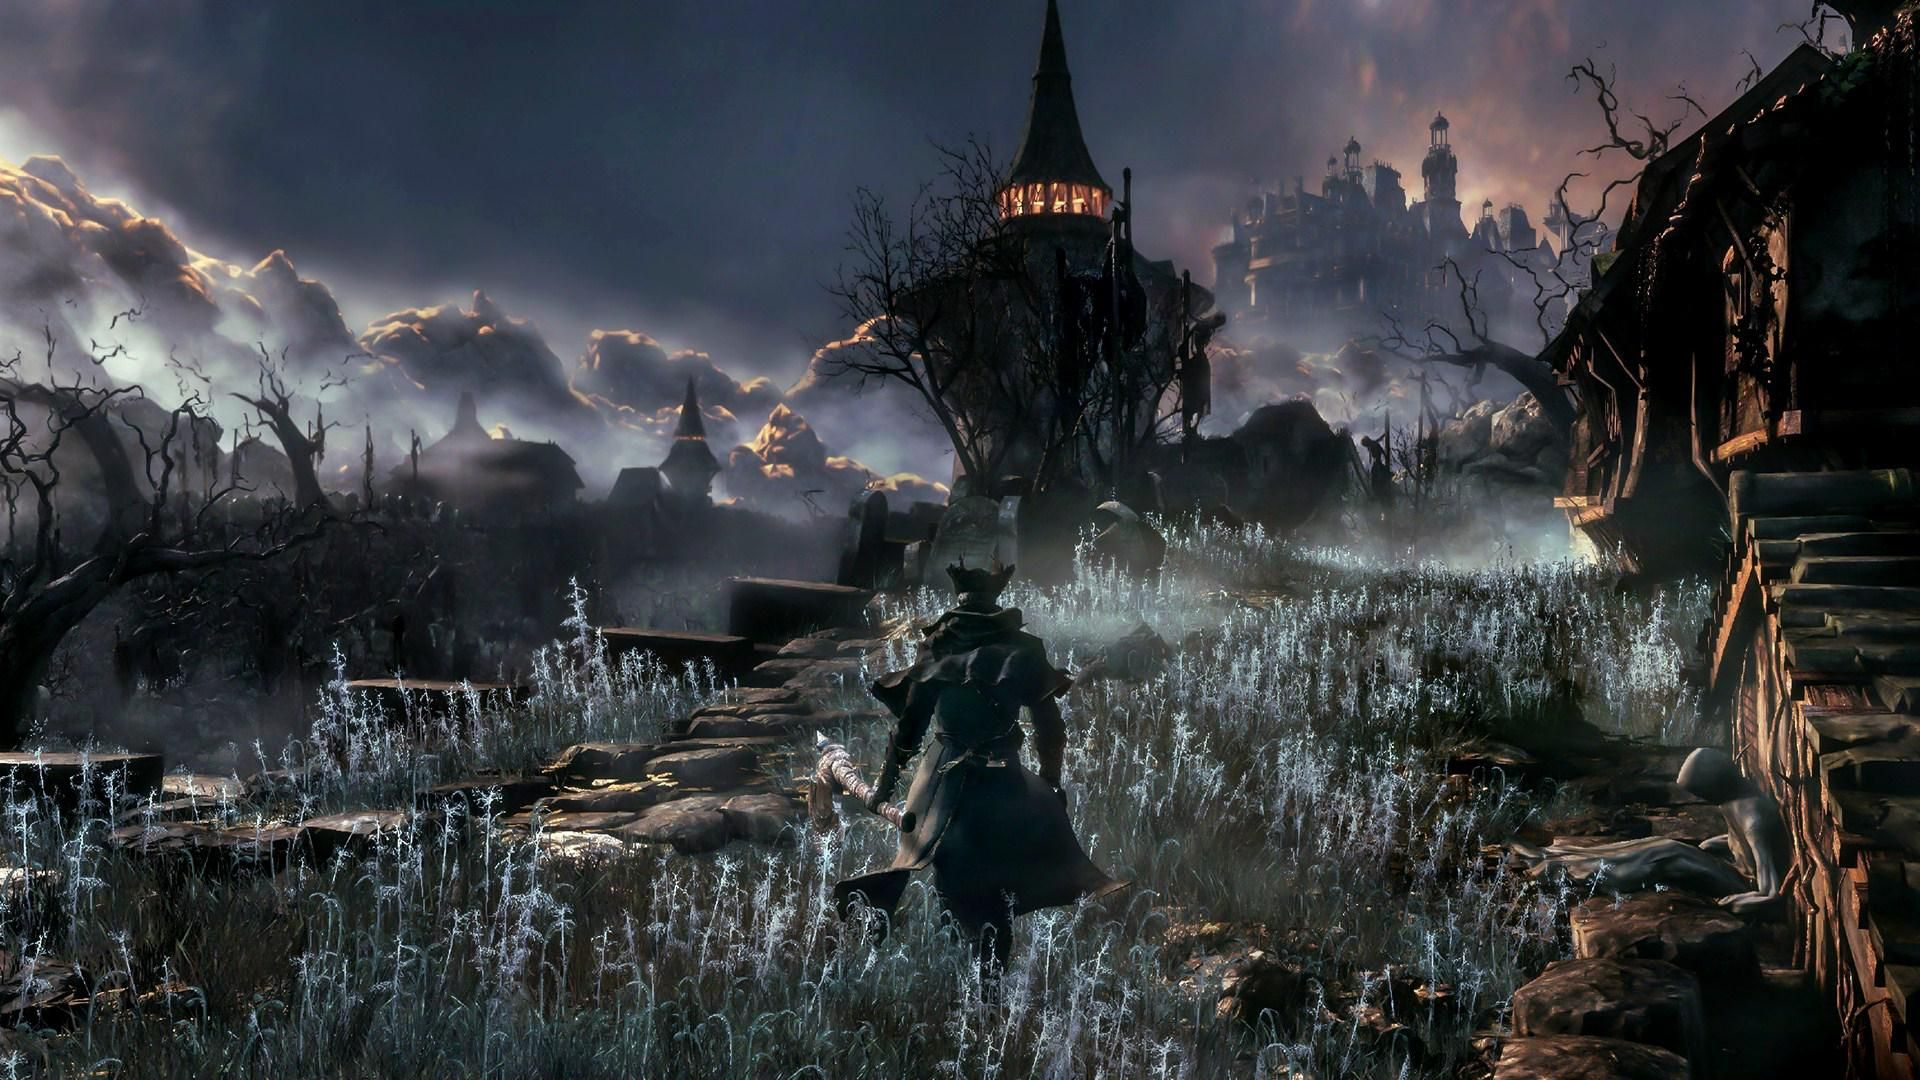 Pin By Colin Chesser On Fs Inspiration With Images Dark Souls Dark Souls 3 Bloodborne